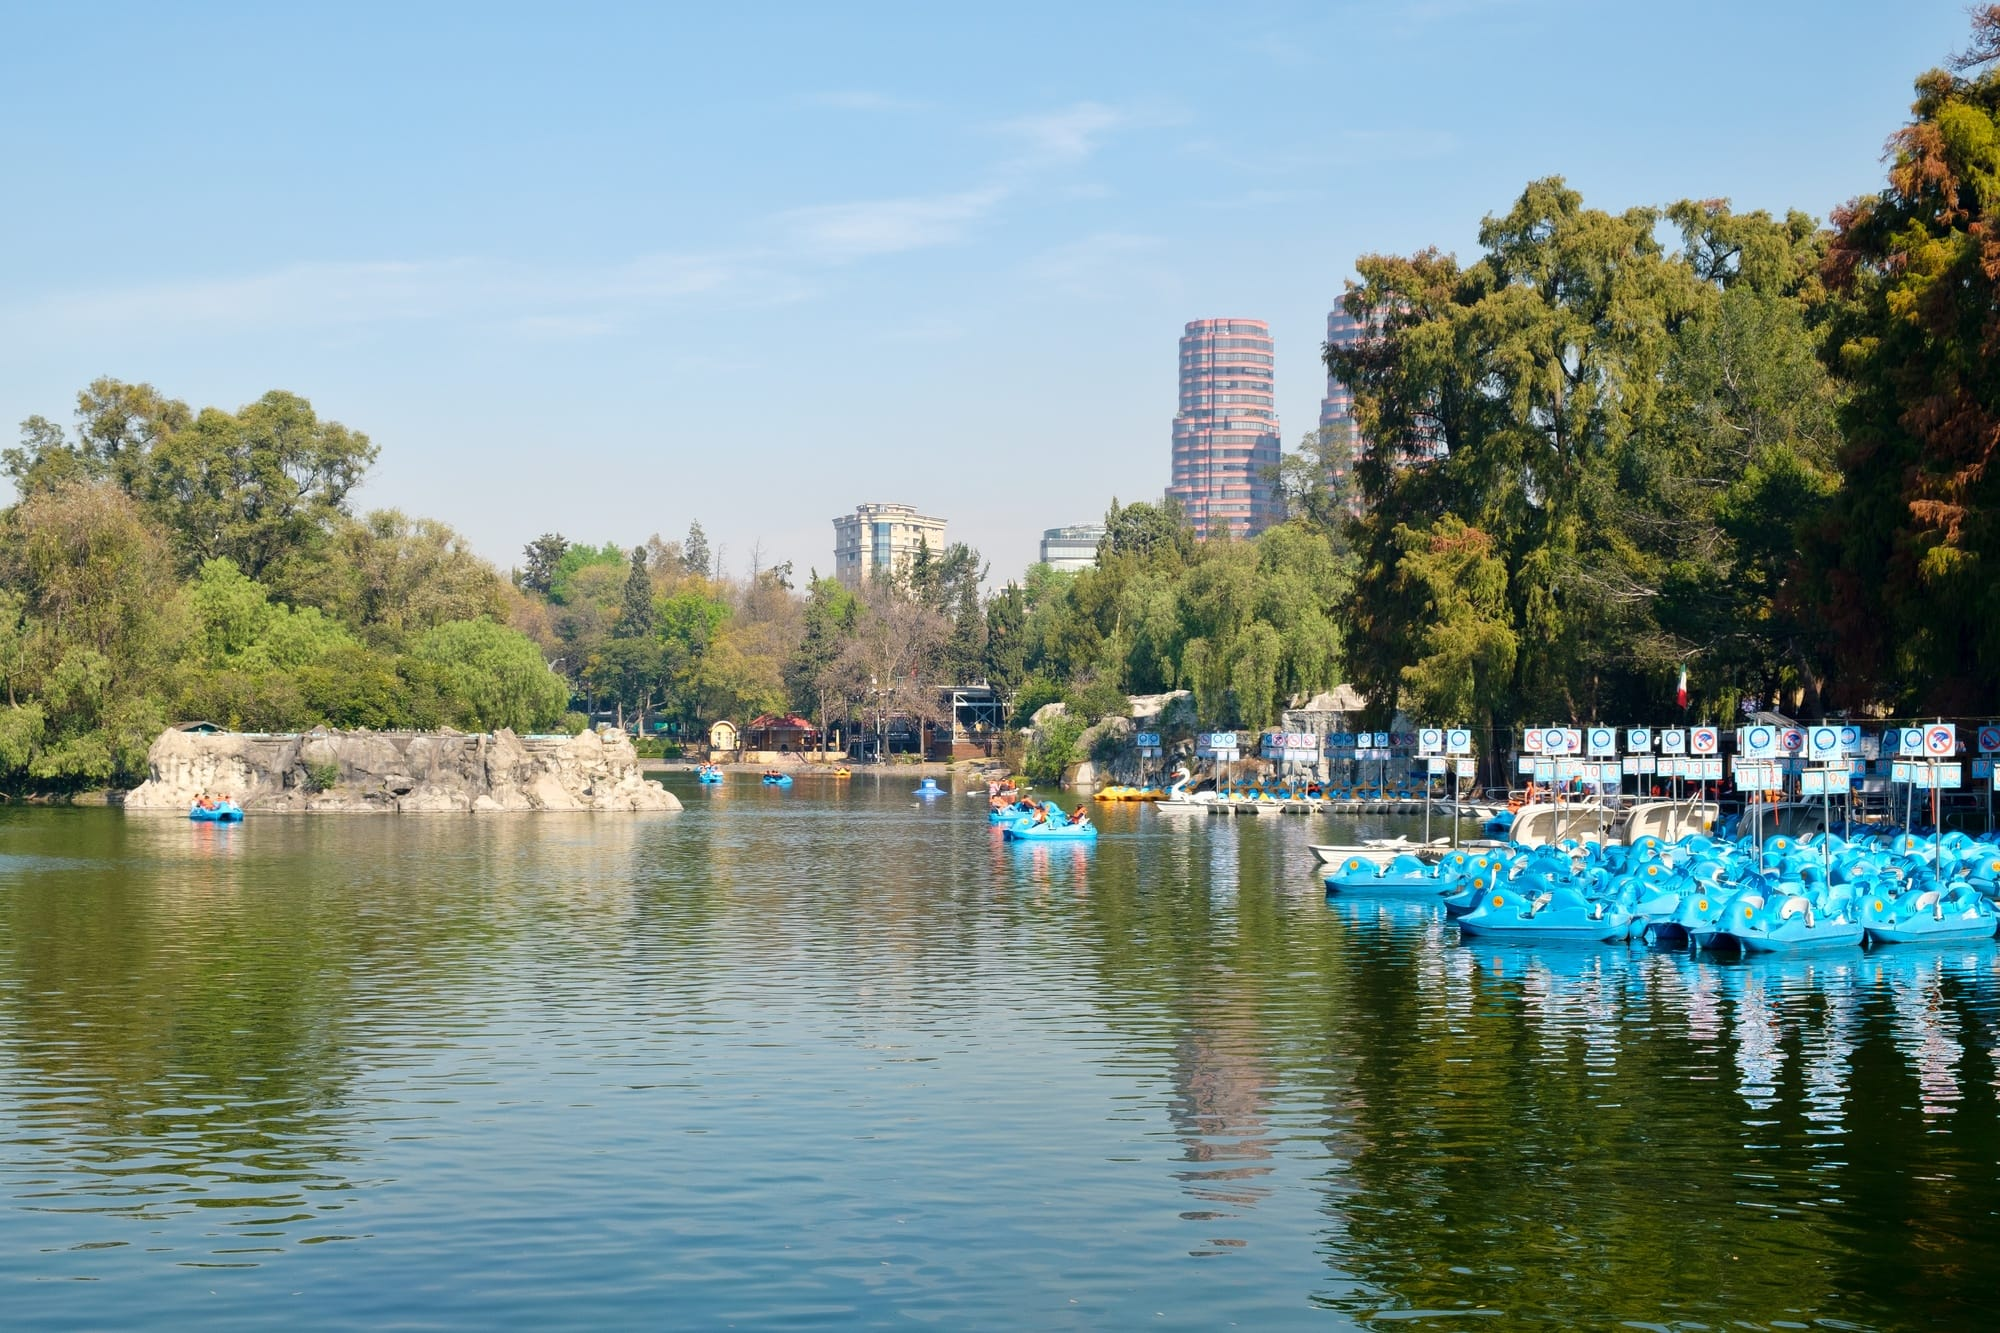 Family activities abound at Chapultepec Park in Mexico City with kids